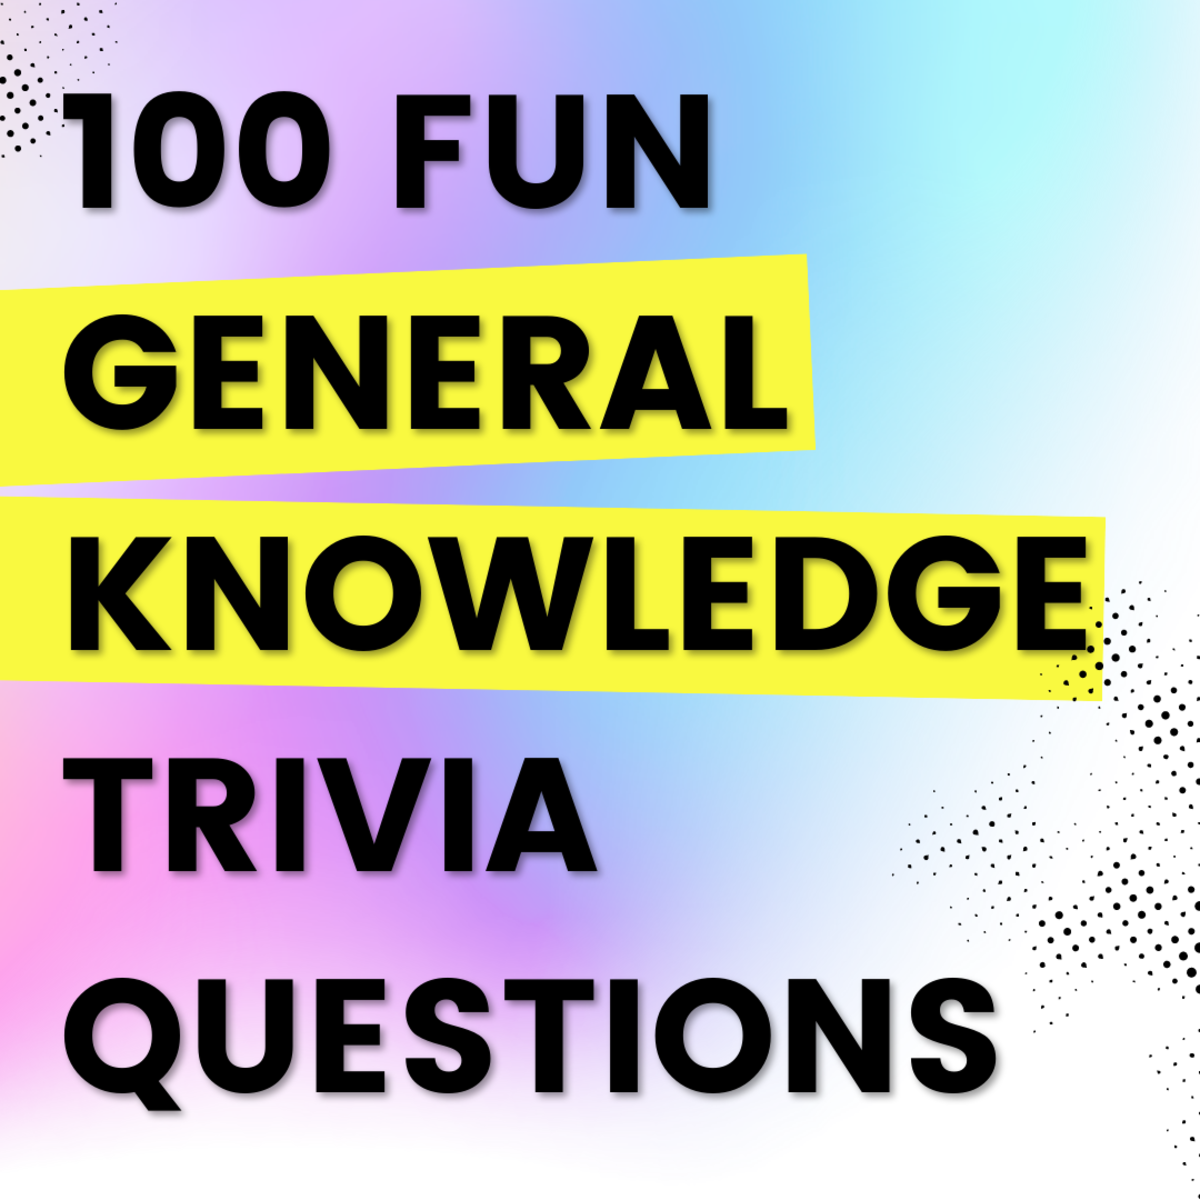 These fun, general knowledge quizzes are suitable for a wide variety of groups and settings.